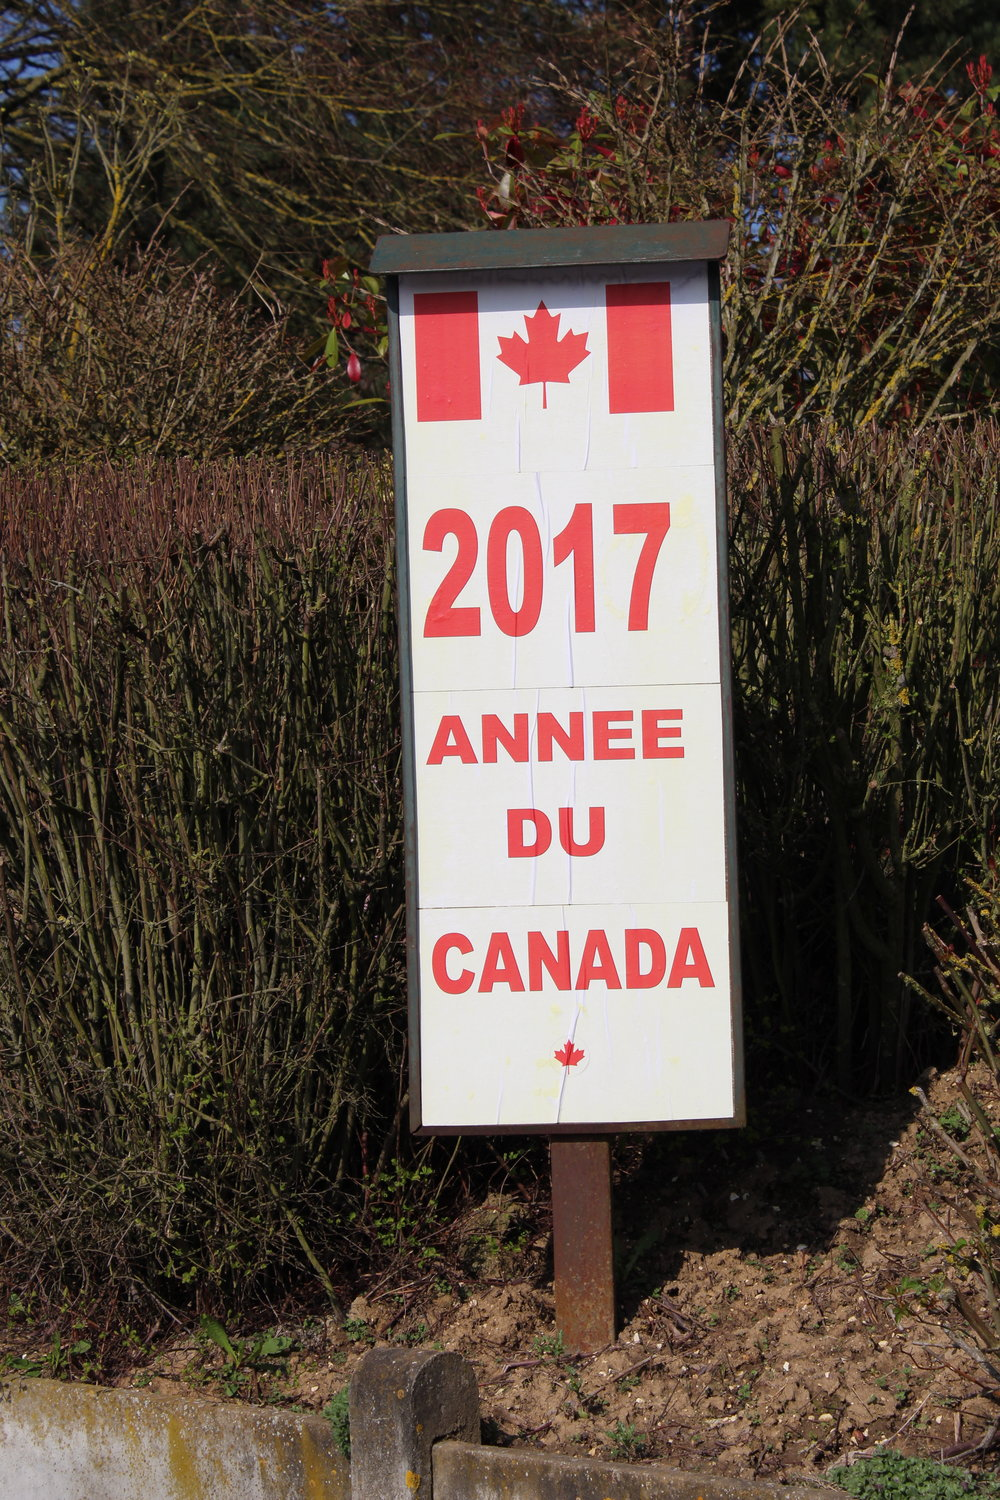 2017 is the Year of Canada: signs greet you at all entrances to the village.